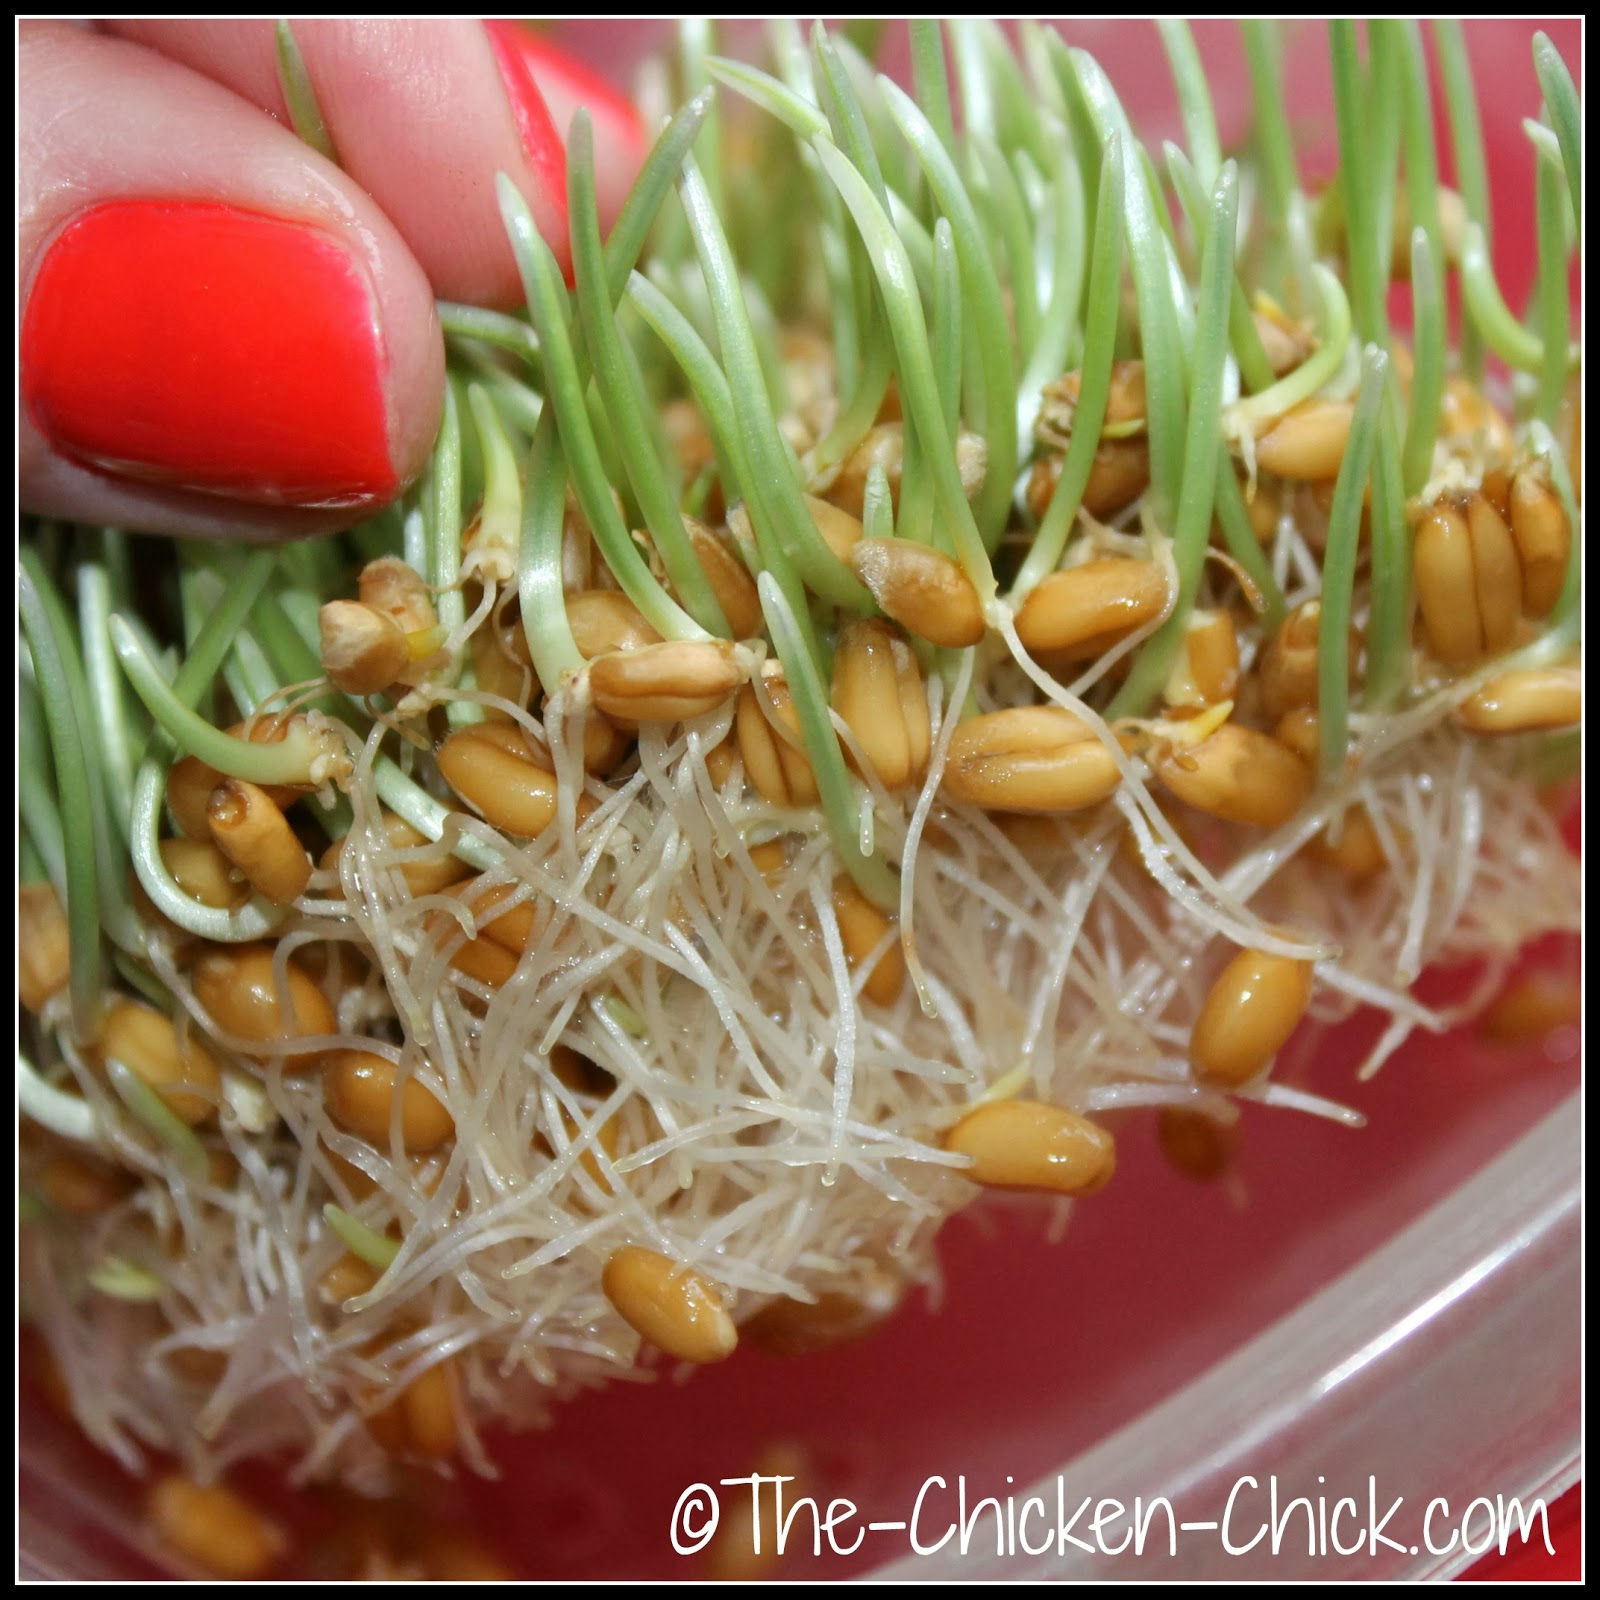 wheat sprouts for chickens at day four of growth